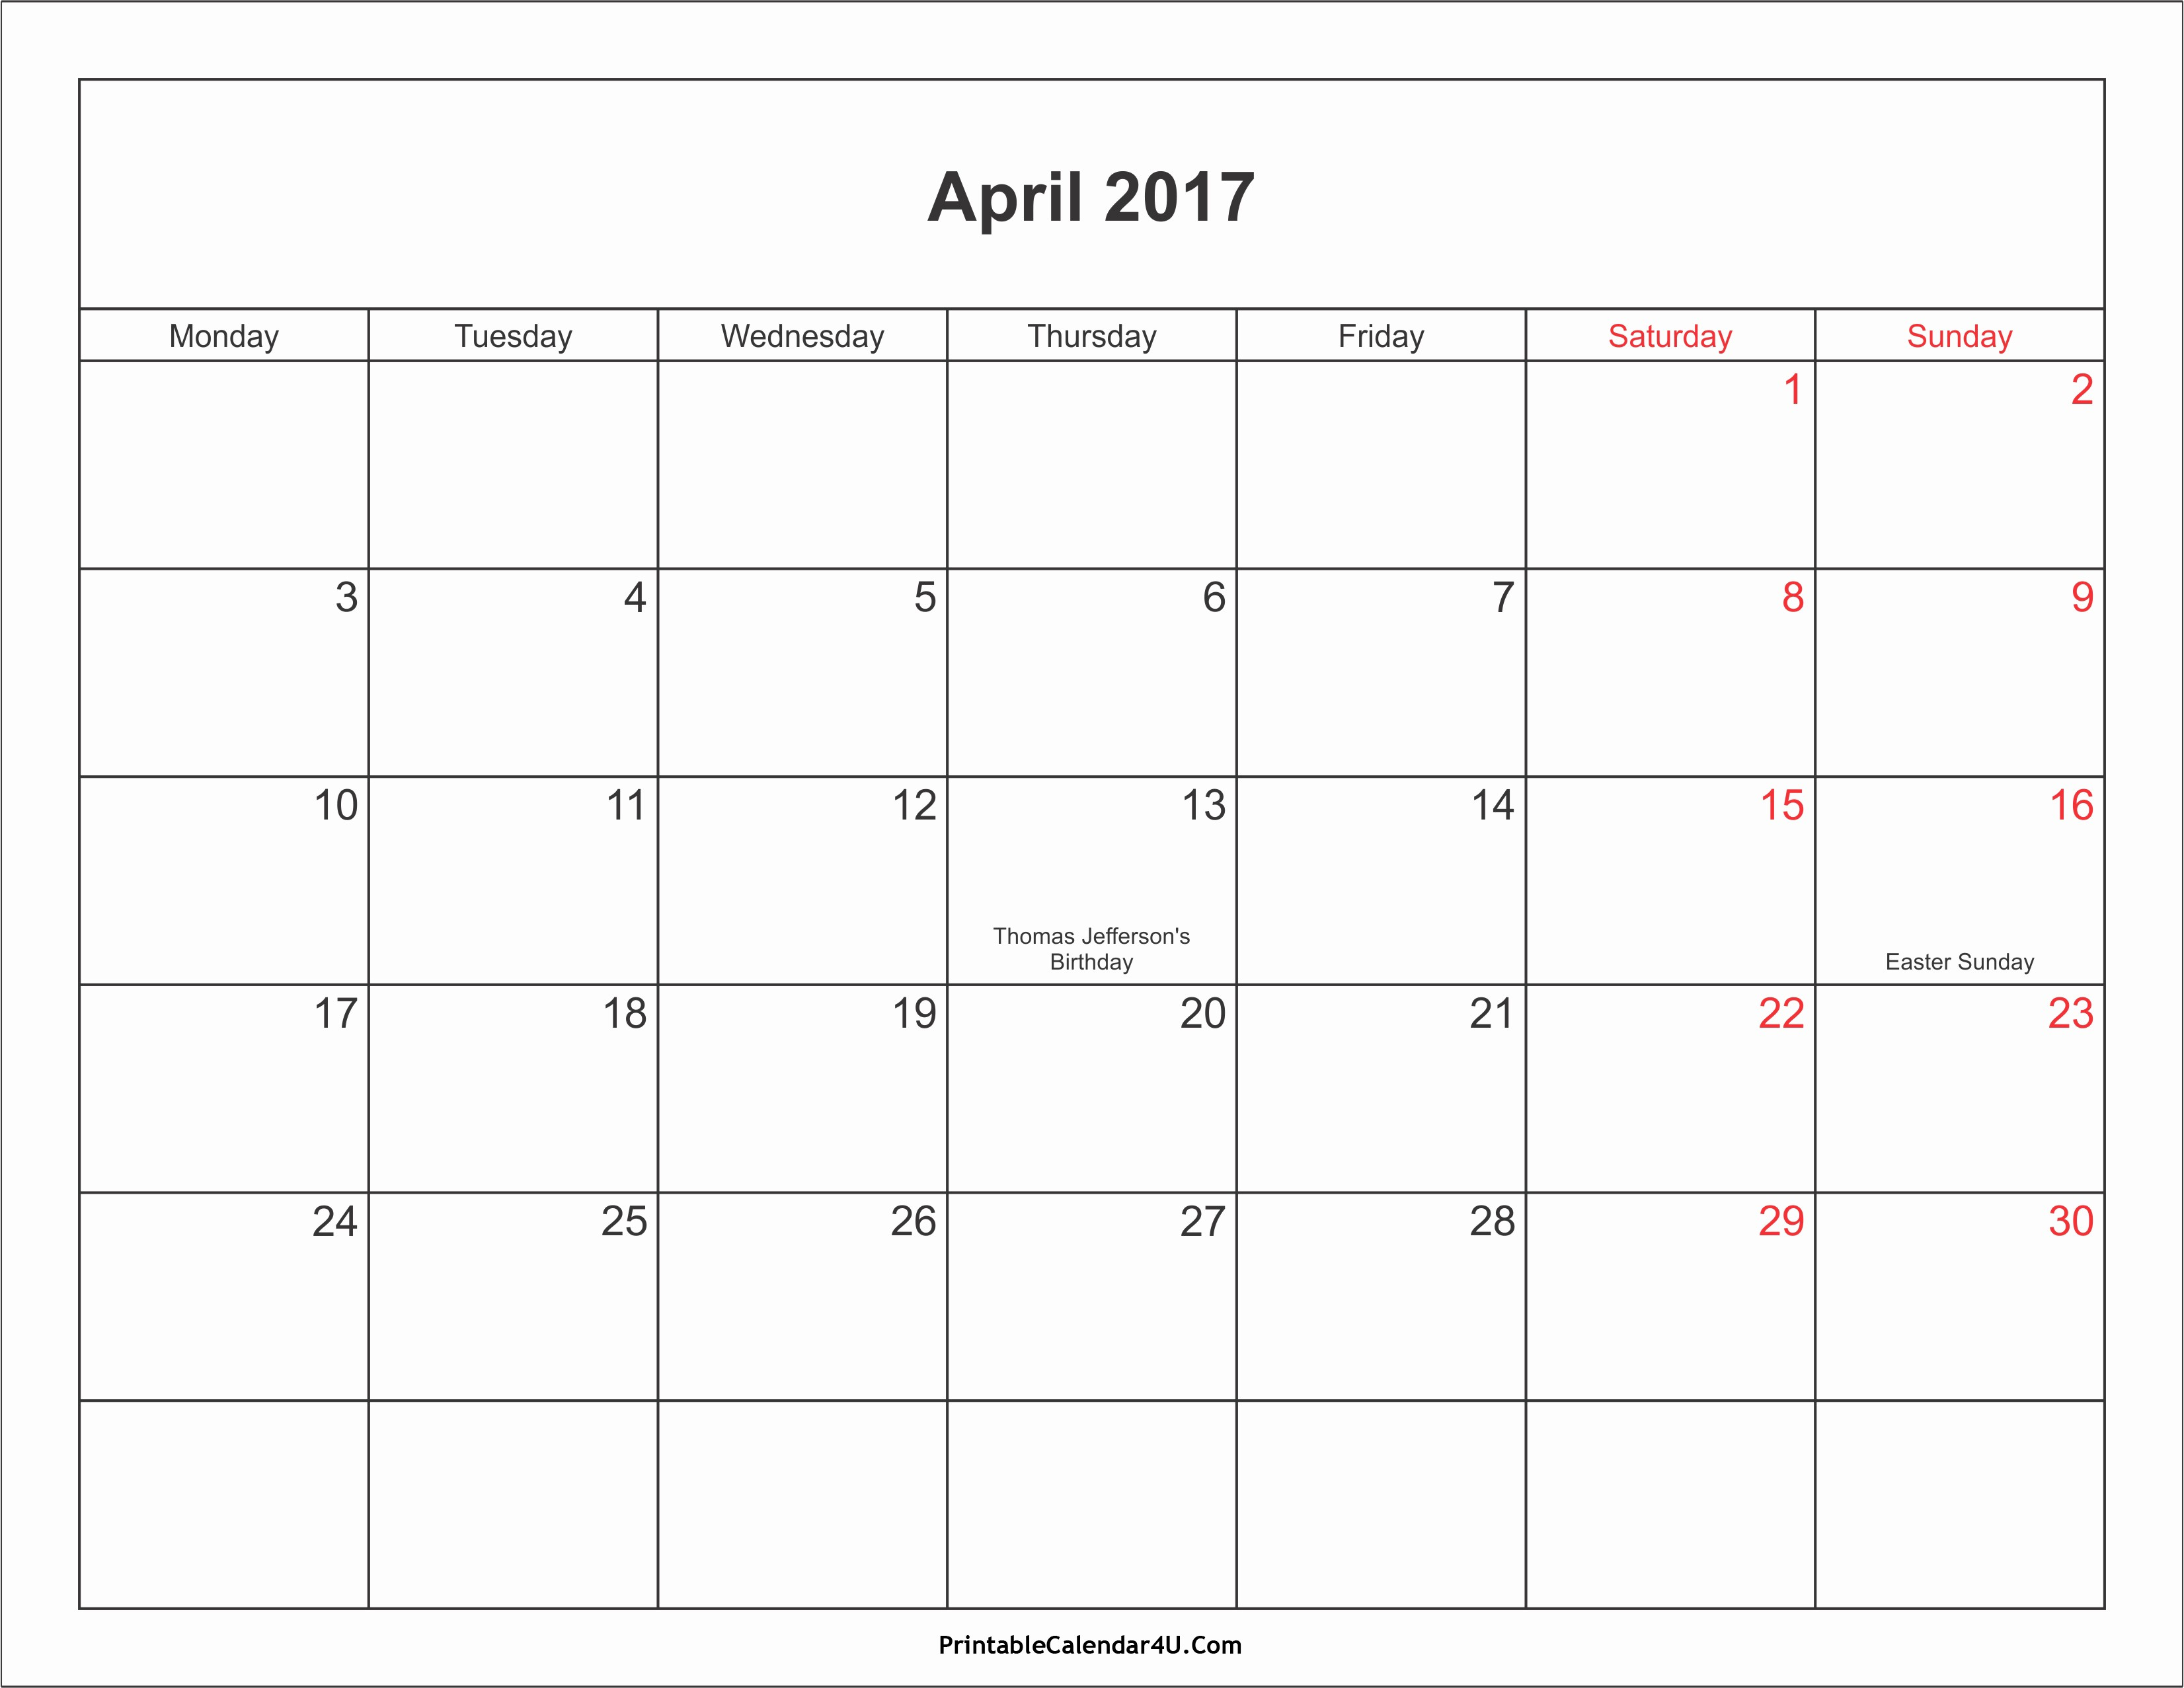 Calendar 2017 Template with Holidays Unique June 2017 Calendar Printable with Holidays